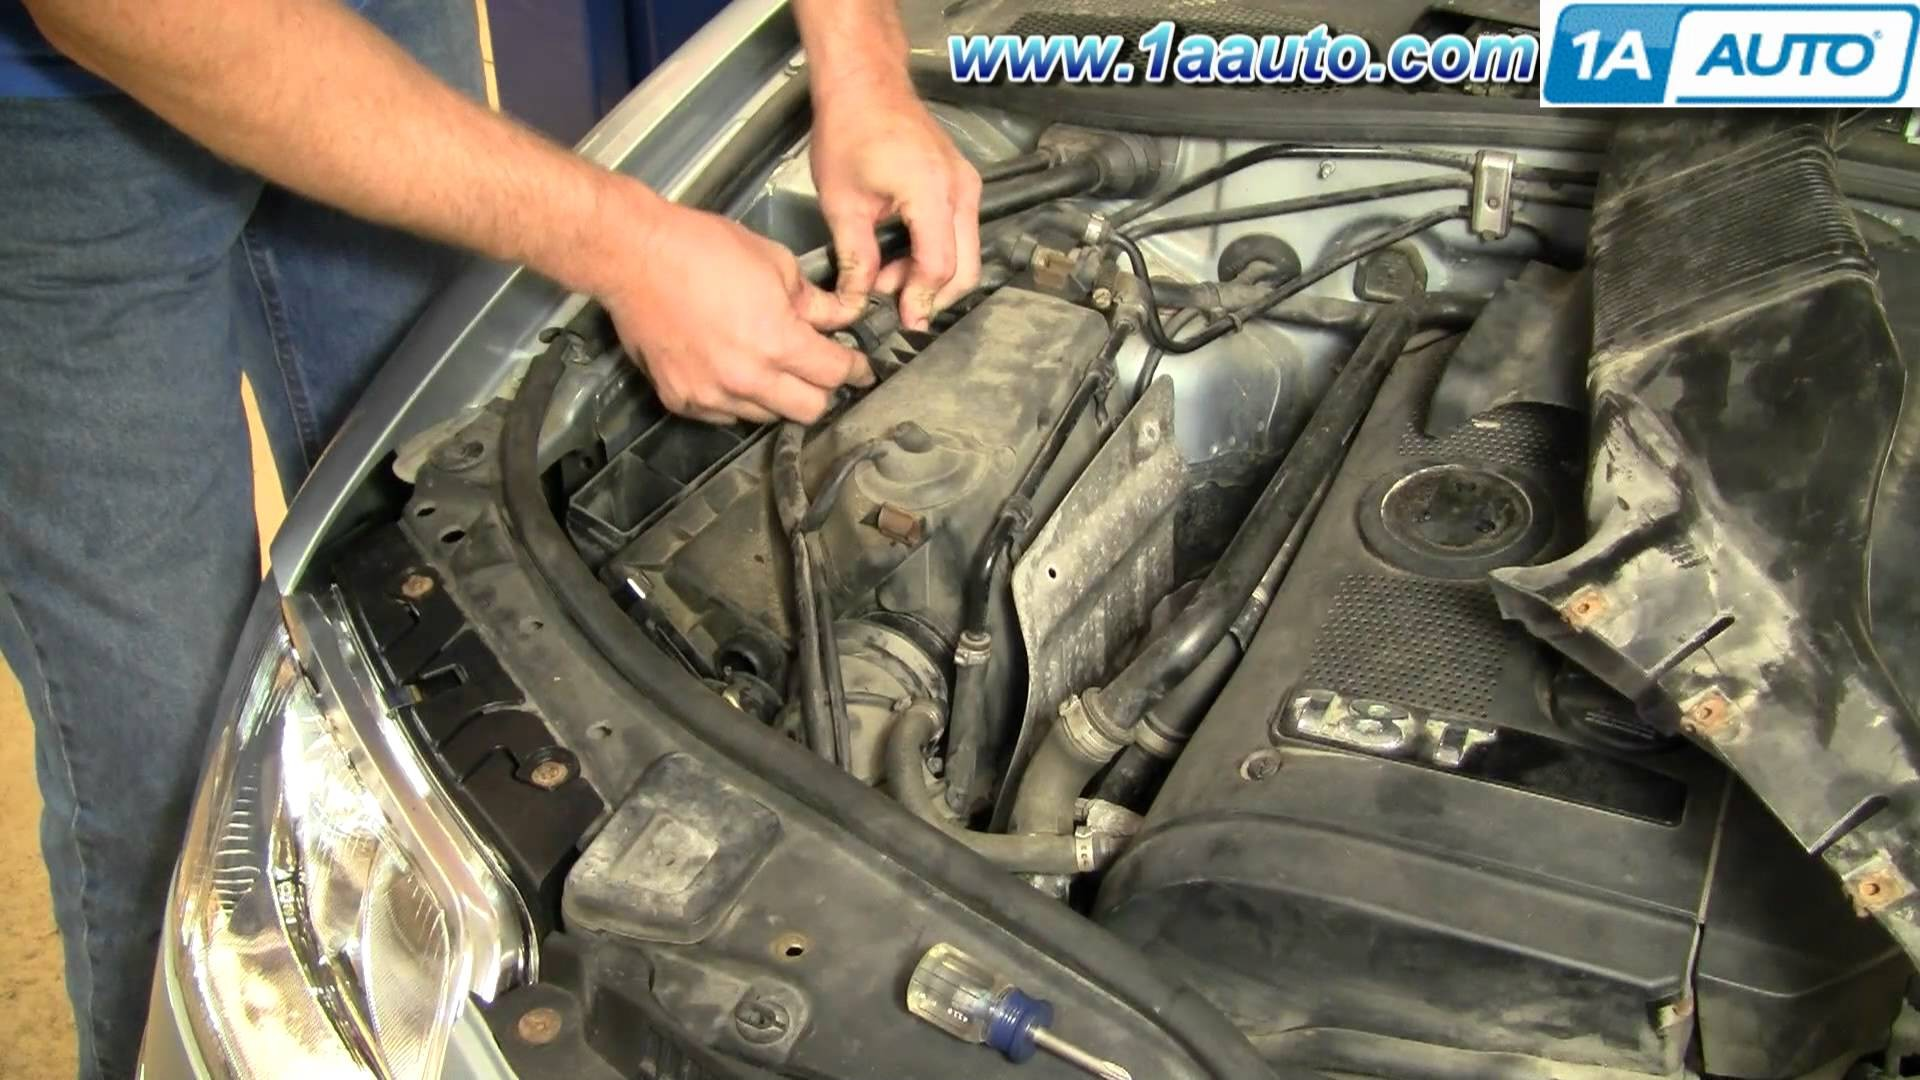 2004 Passat Engine Diagram How to Install Replace Engine Air Filter Volkswagen Passat 02 05 Of 2004 Passat Engine Diagram